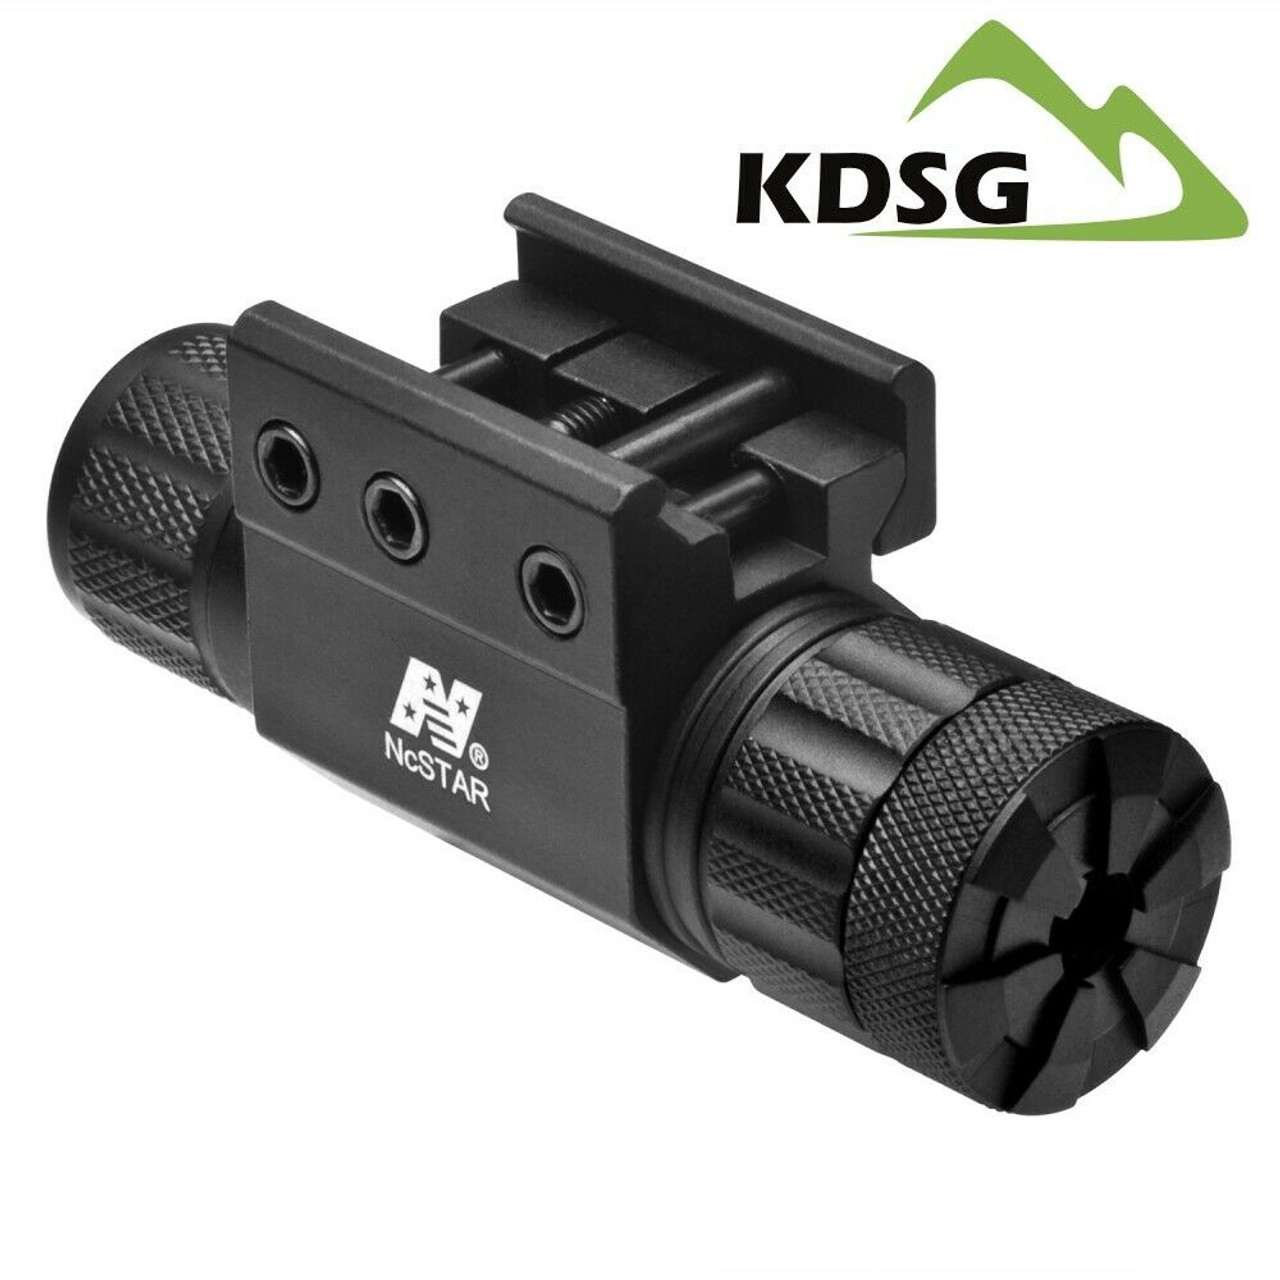 NcSTAR APRLSMG Compact Green Laser w/Weaver Style Mount and Pressure Switch